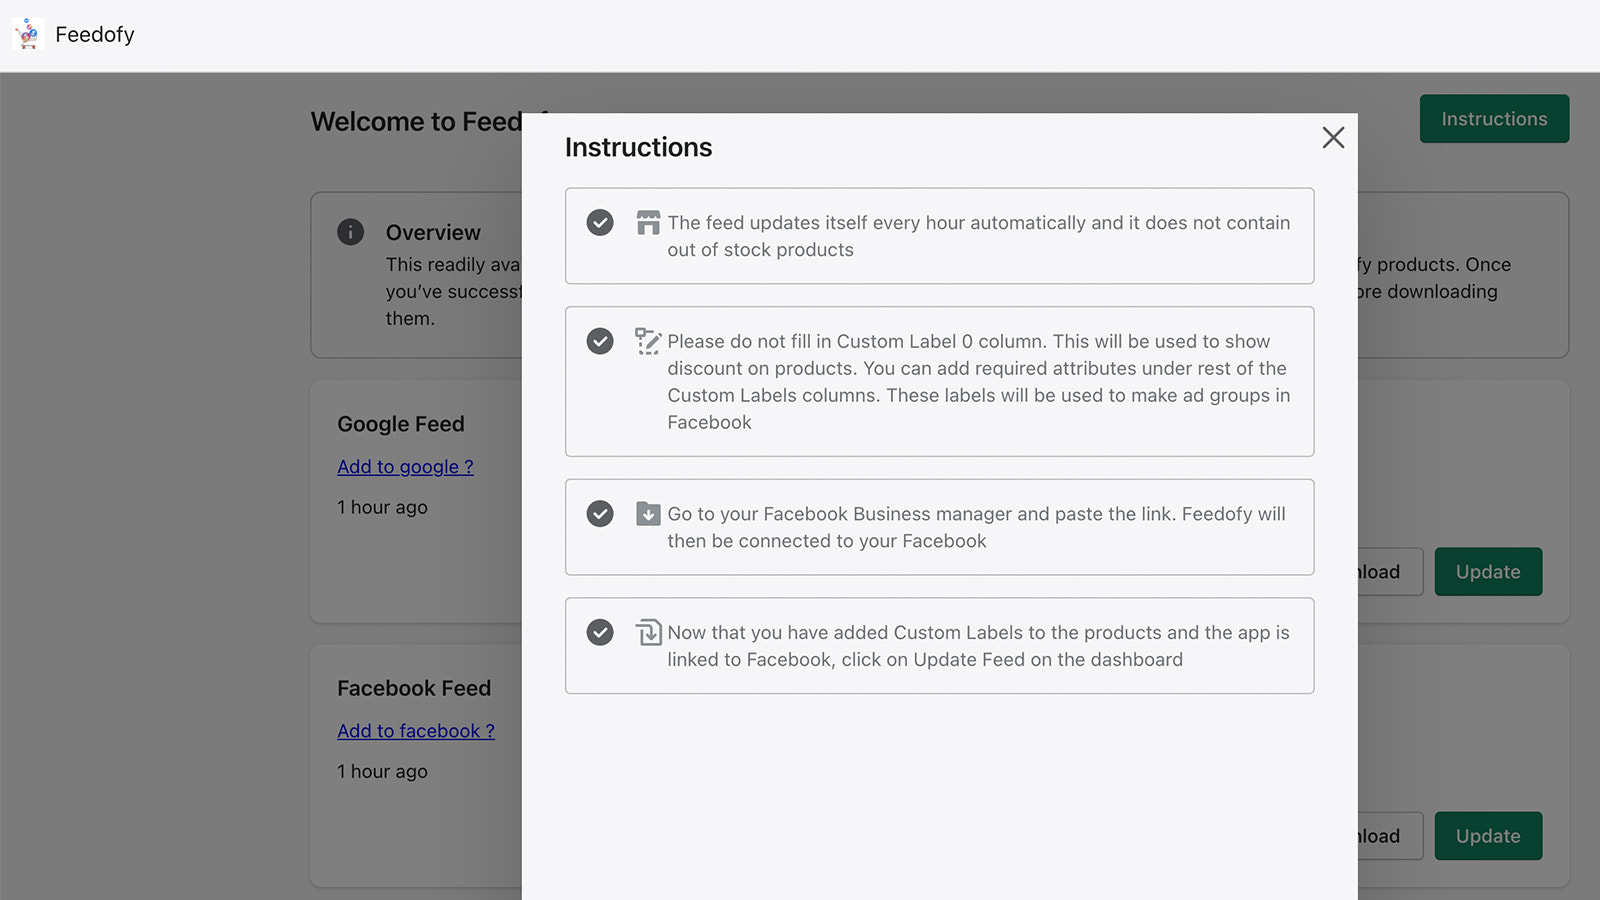 Instructions of Facebook and Google Feed